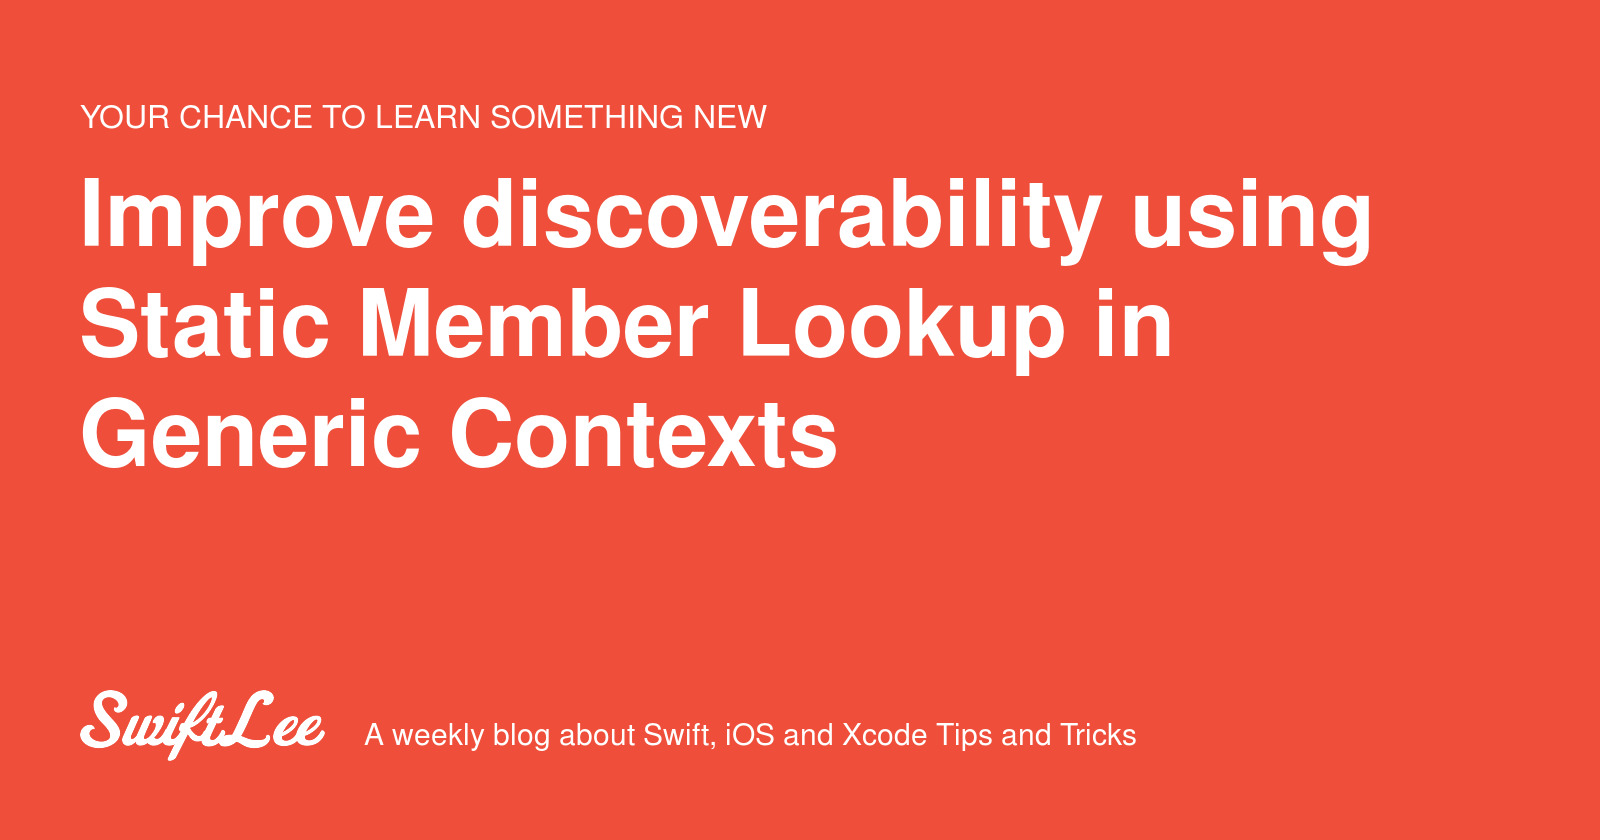 Improve discoverability using Static Member Lookup in Generic Contexts - SwiftLee